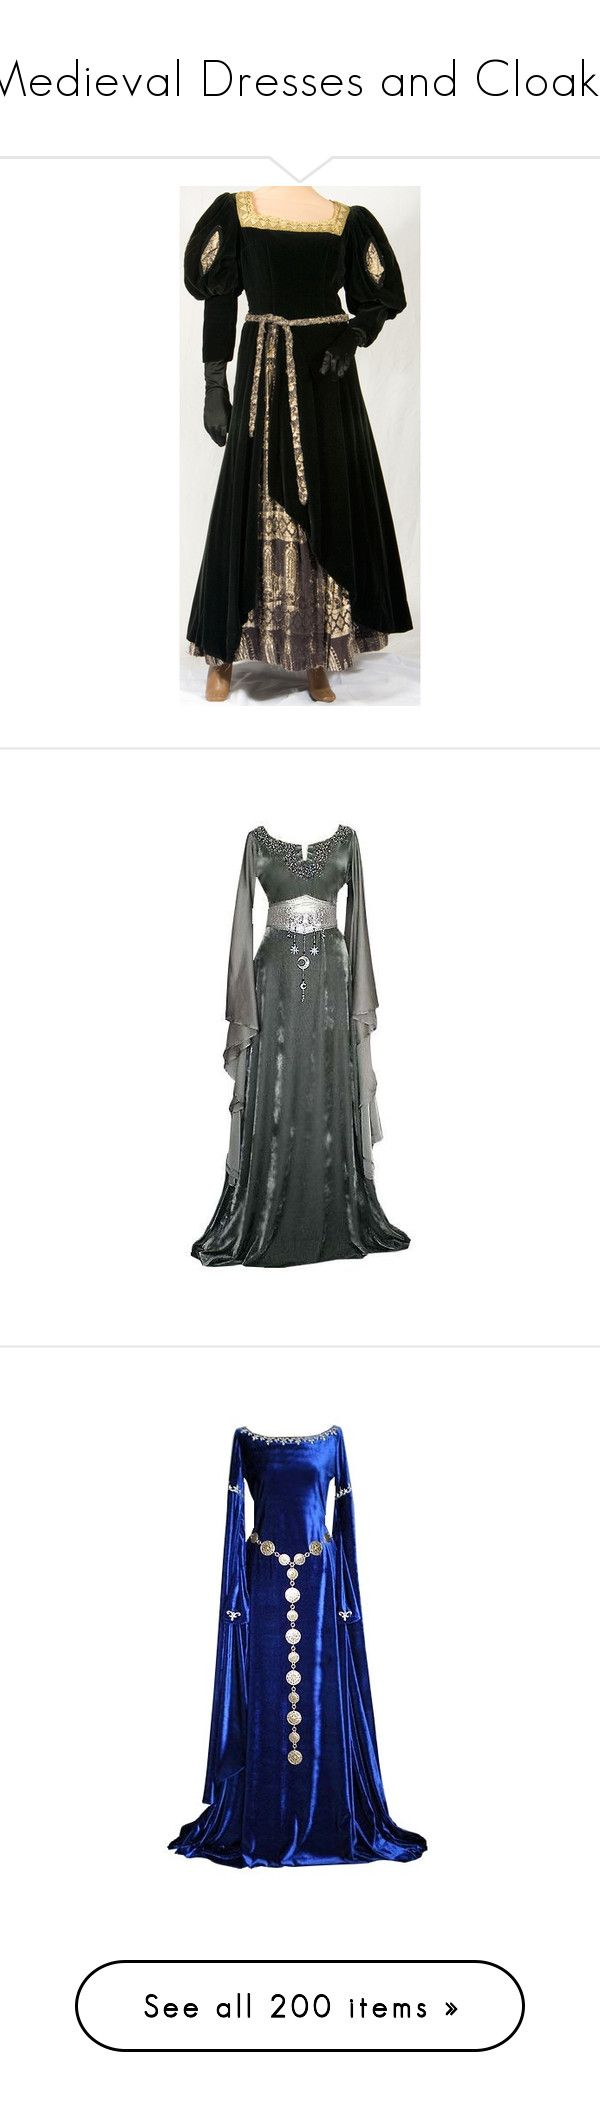 Medieval Dresses and Cloaks  by xx-black-blade-xx ? liked  sc 1 st  Pinterest & Medieval Dresses and Cloaks